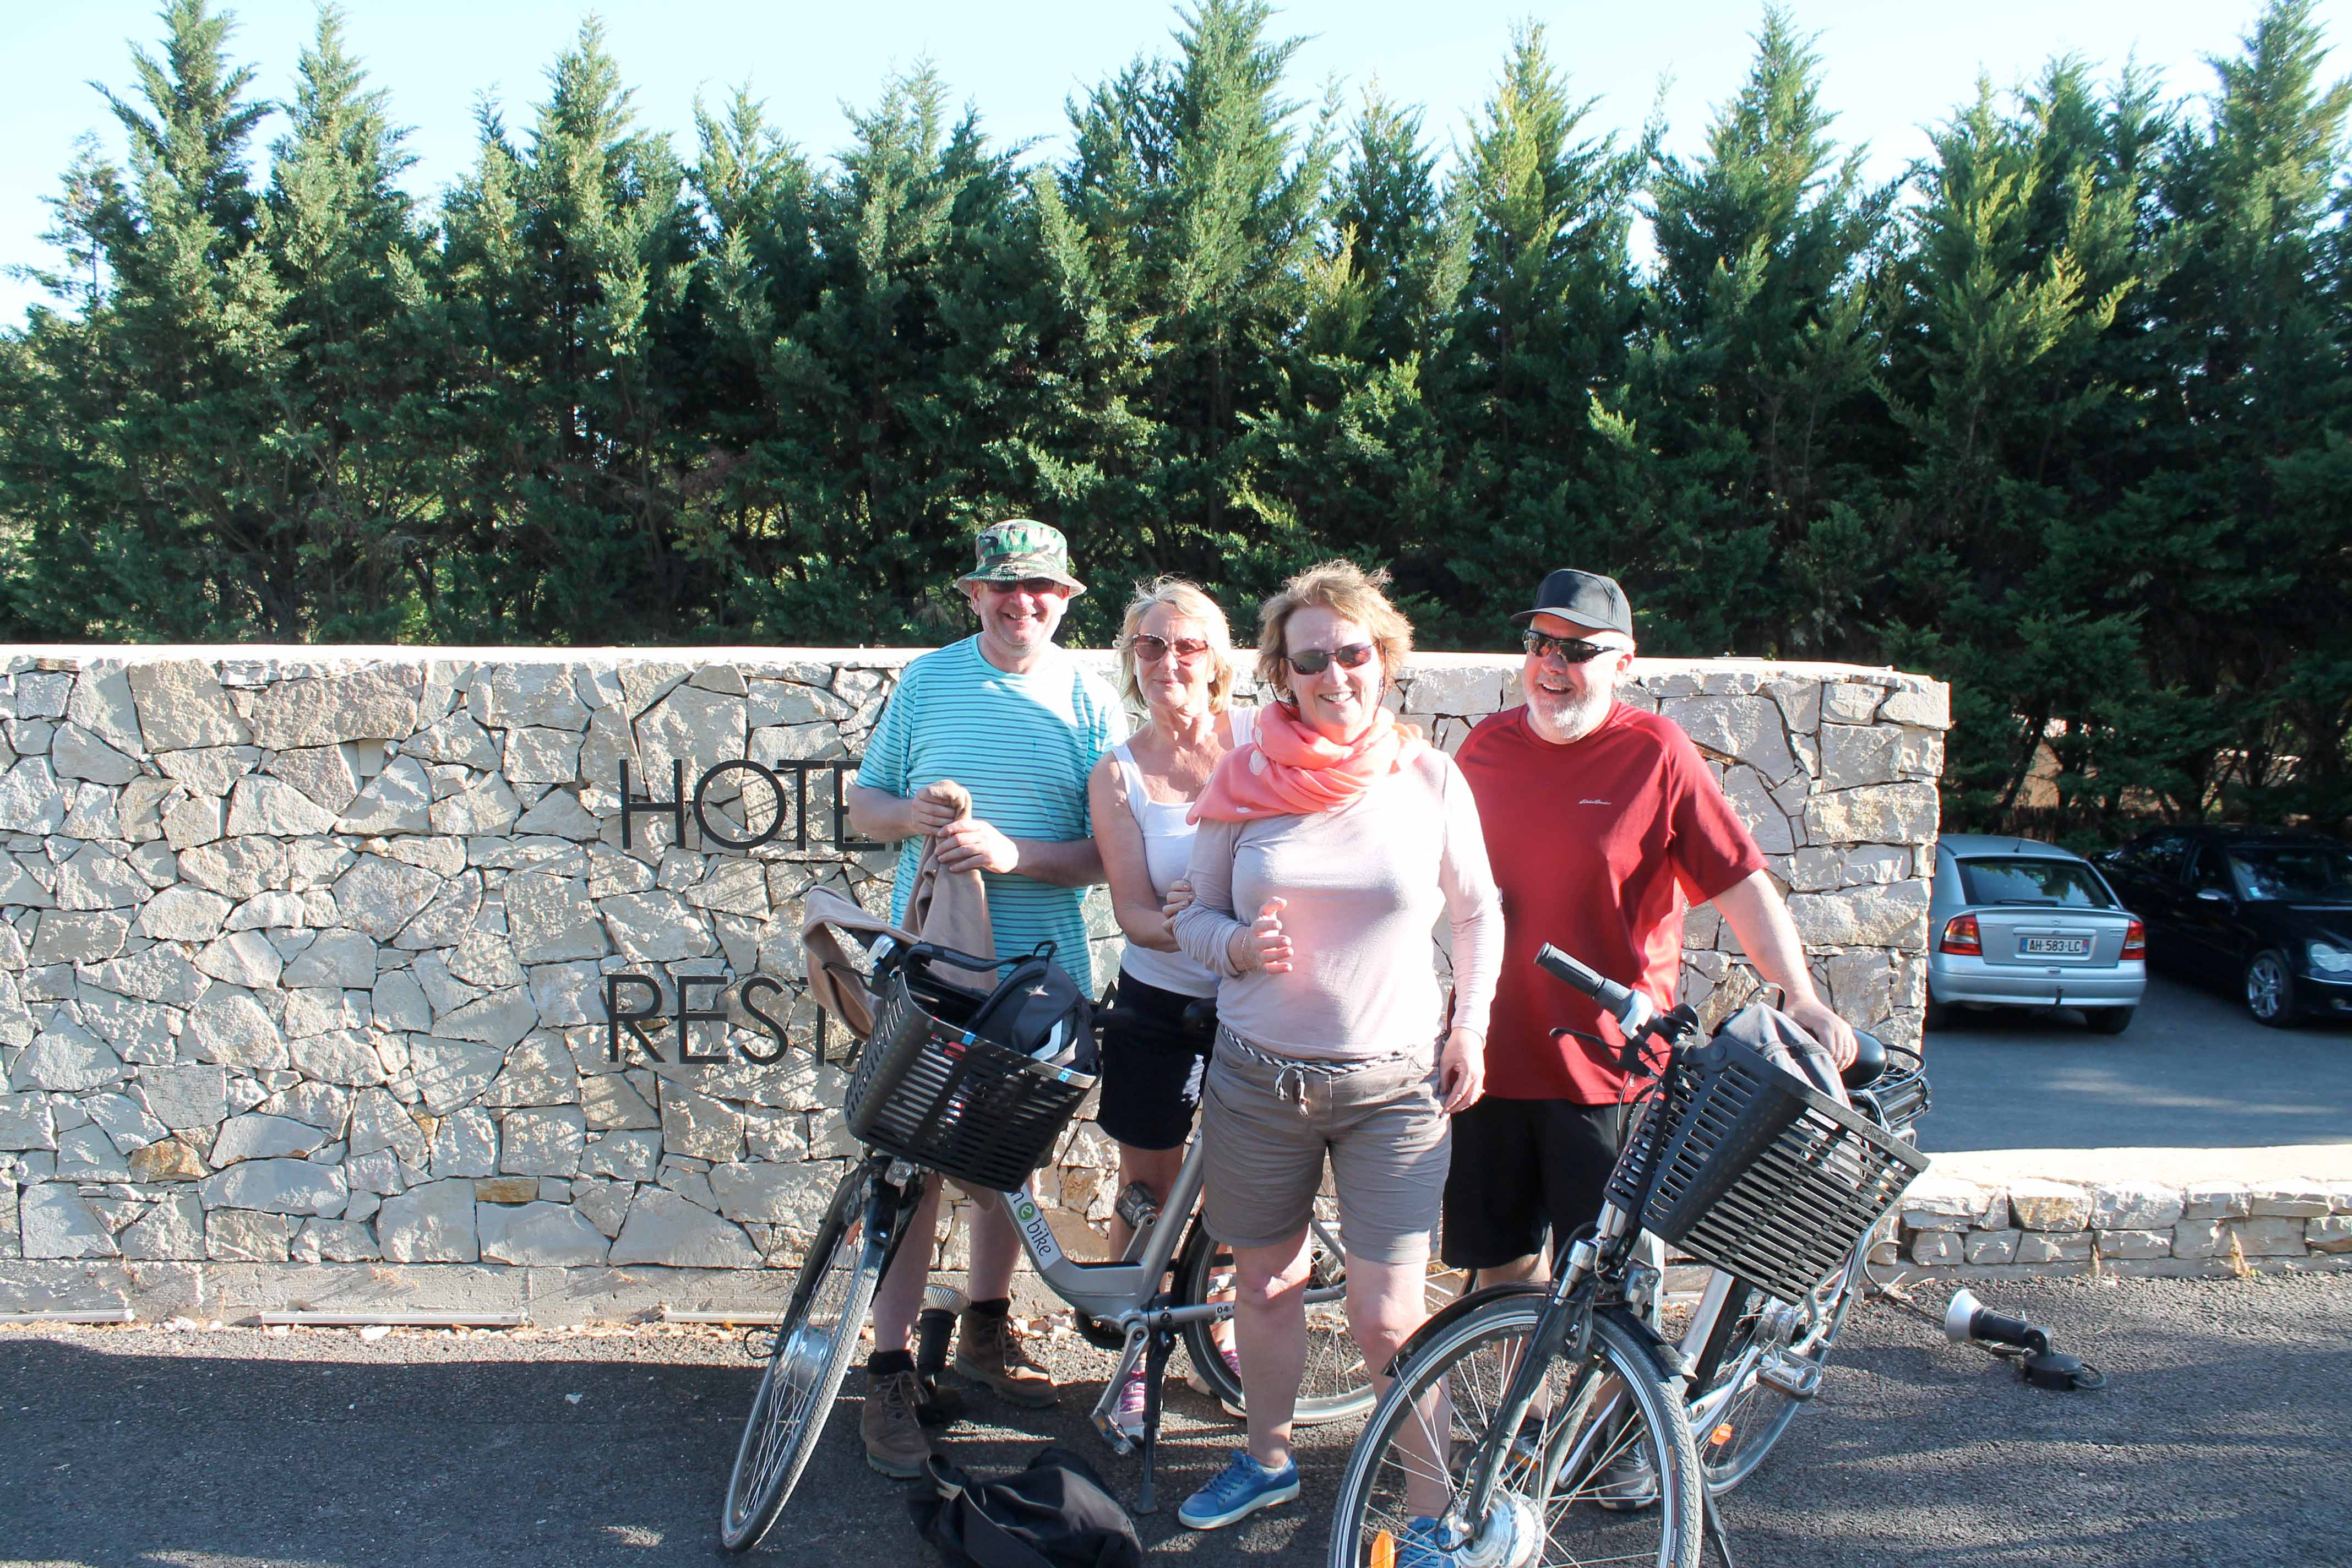 Wine and bike excursion, stop at a restaurant